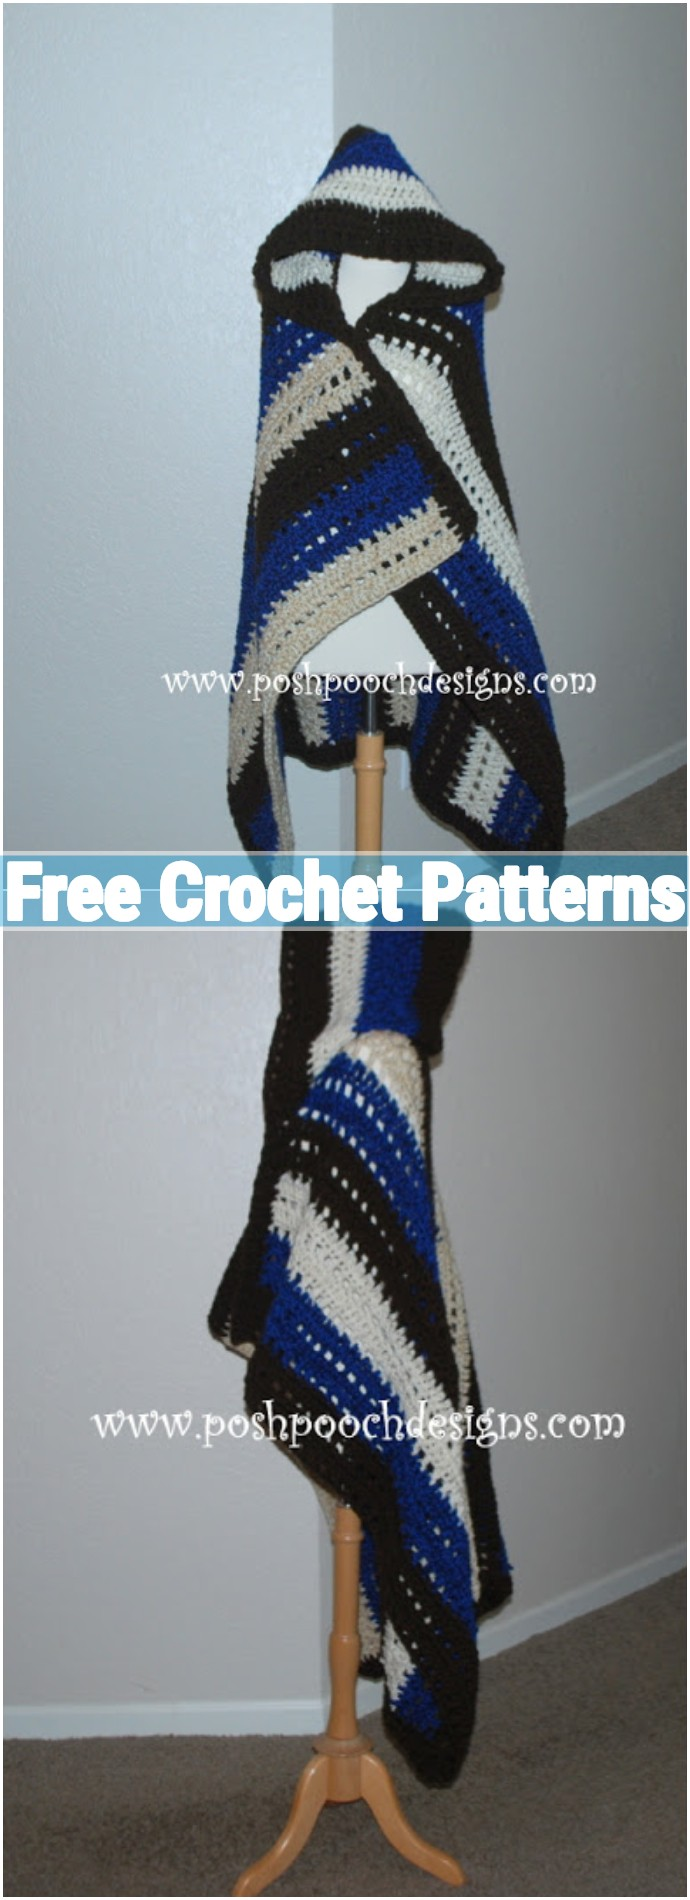 58 Free Crochet Hooded Cowl Patterns Diy Crafts